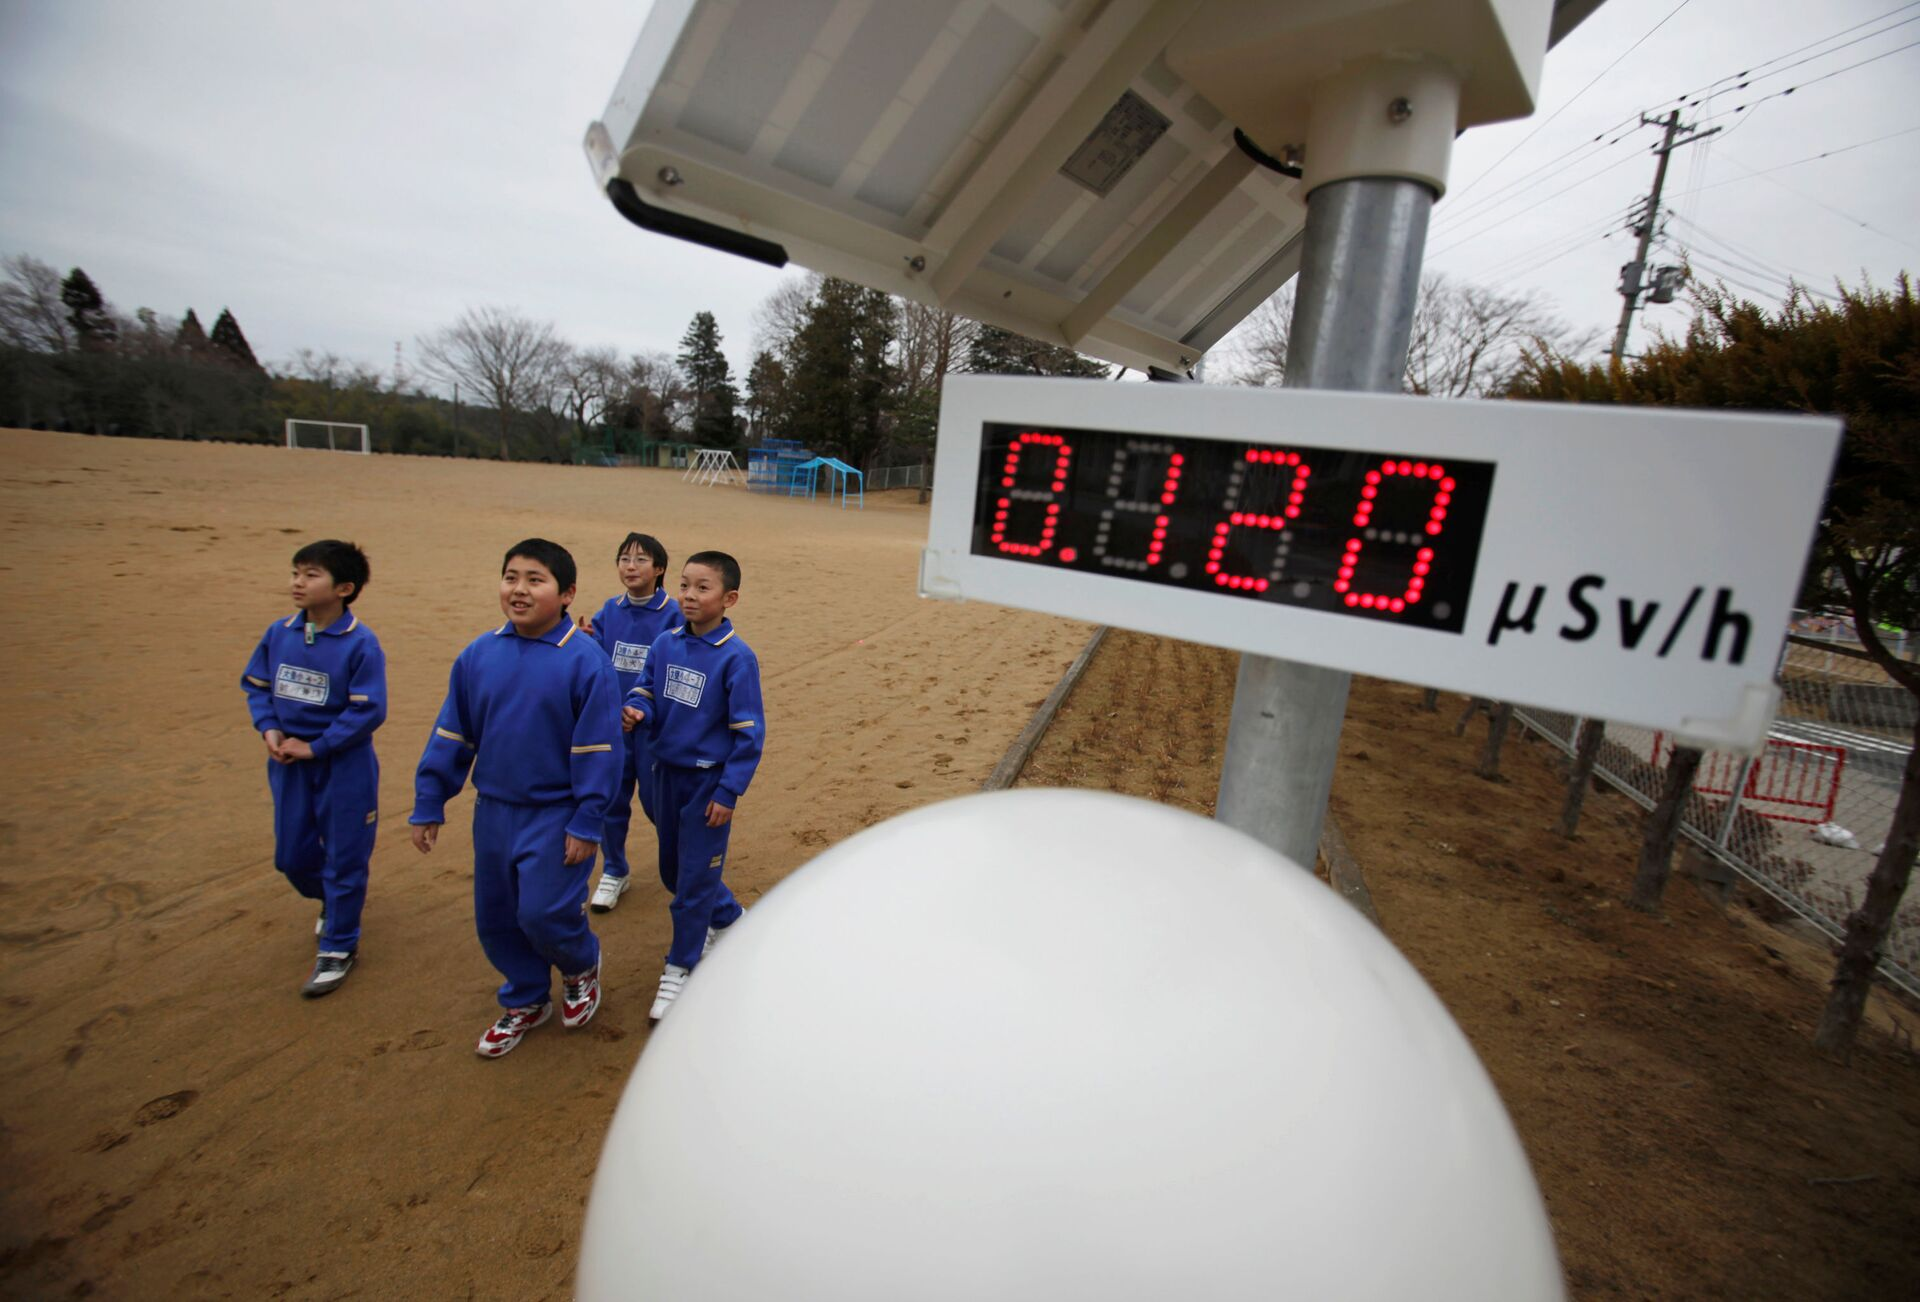 Ten Years After Freak Tsunami Caused Fukushima Disaster, Why Is Japan Sticking With Nuclear Energy? - Sputnik International, 1920, 11.03.2021